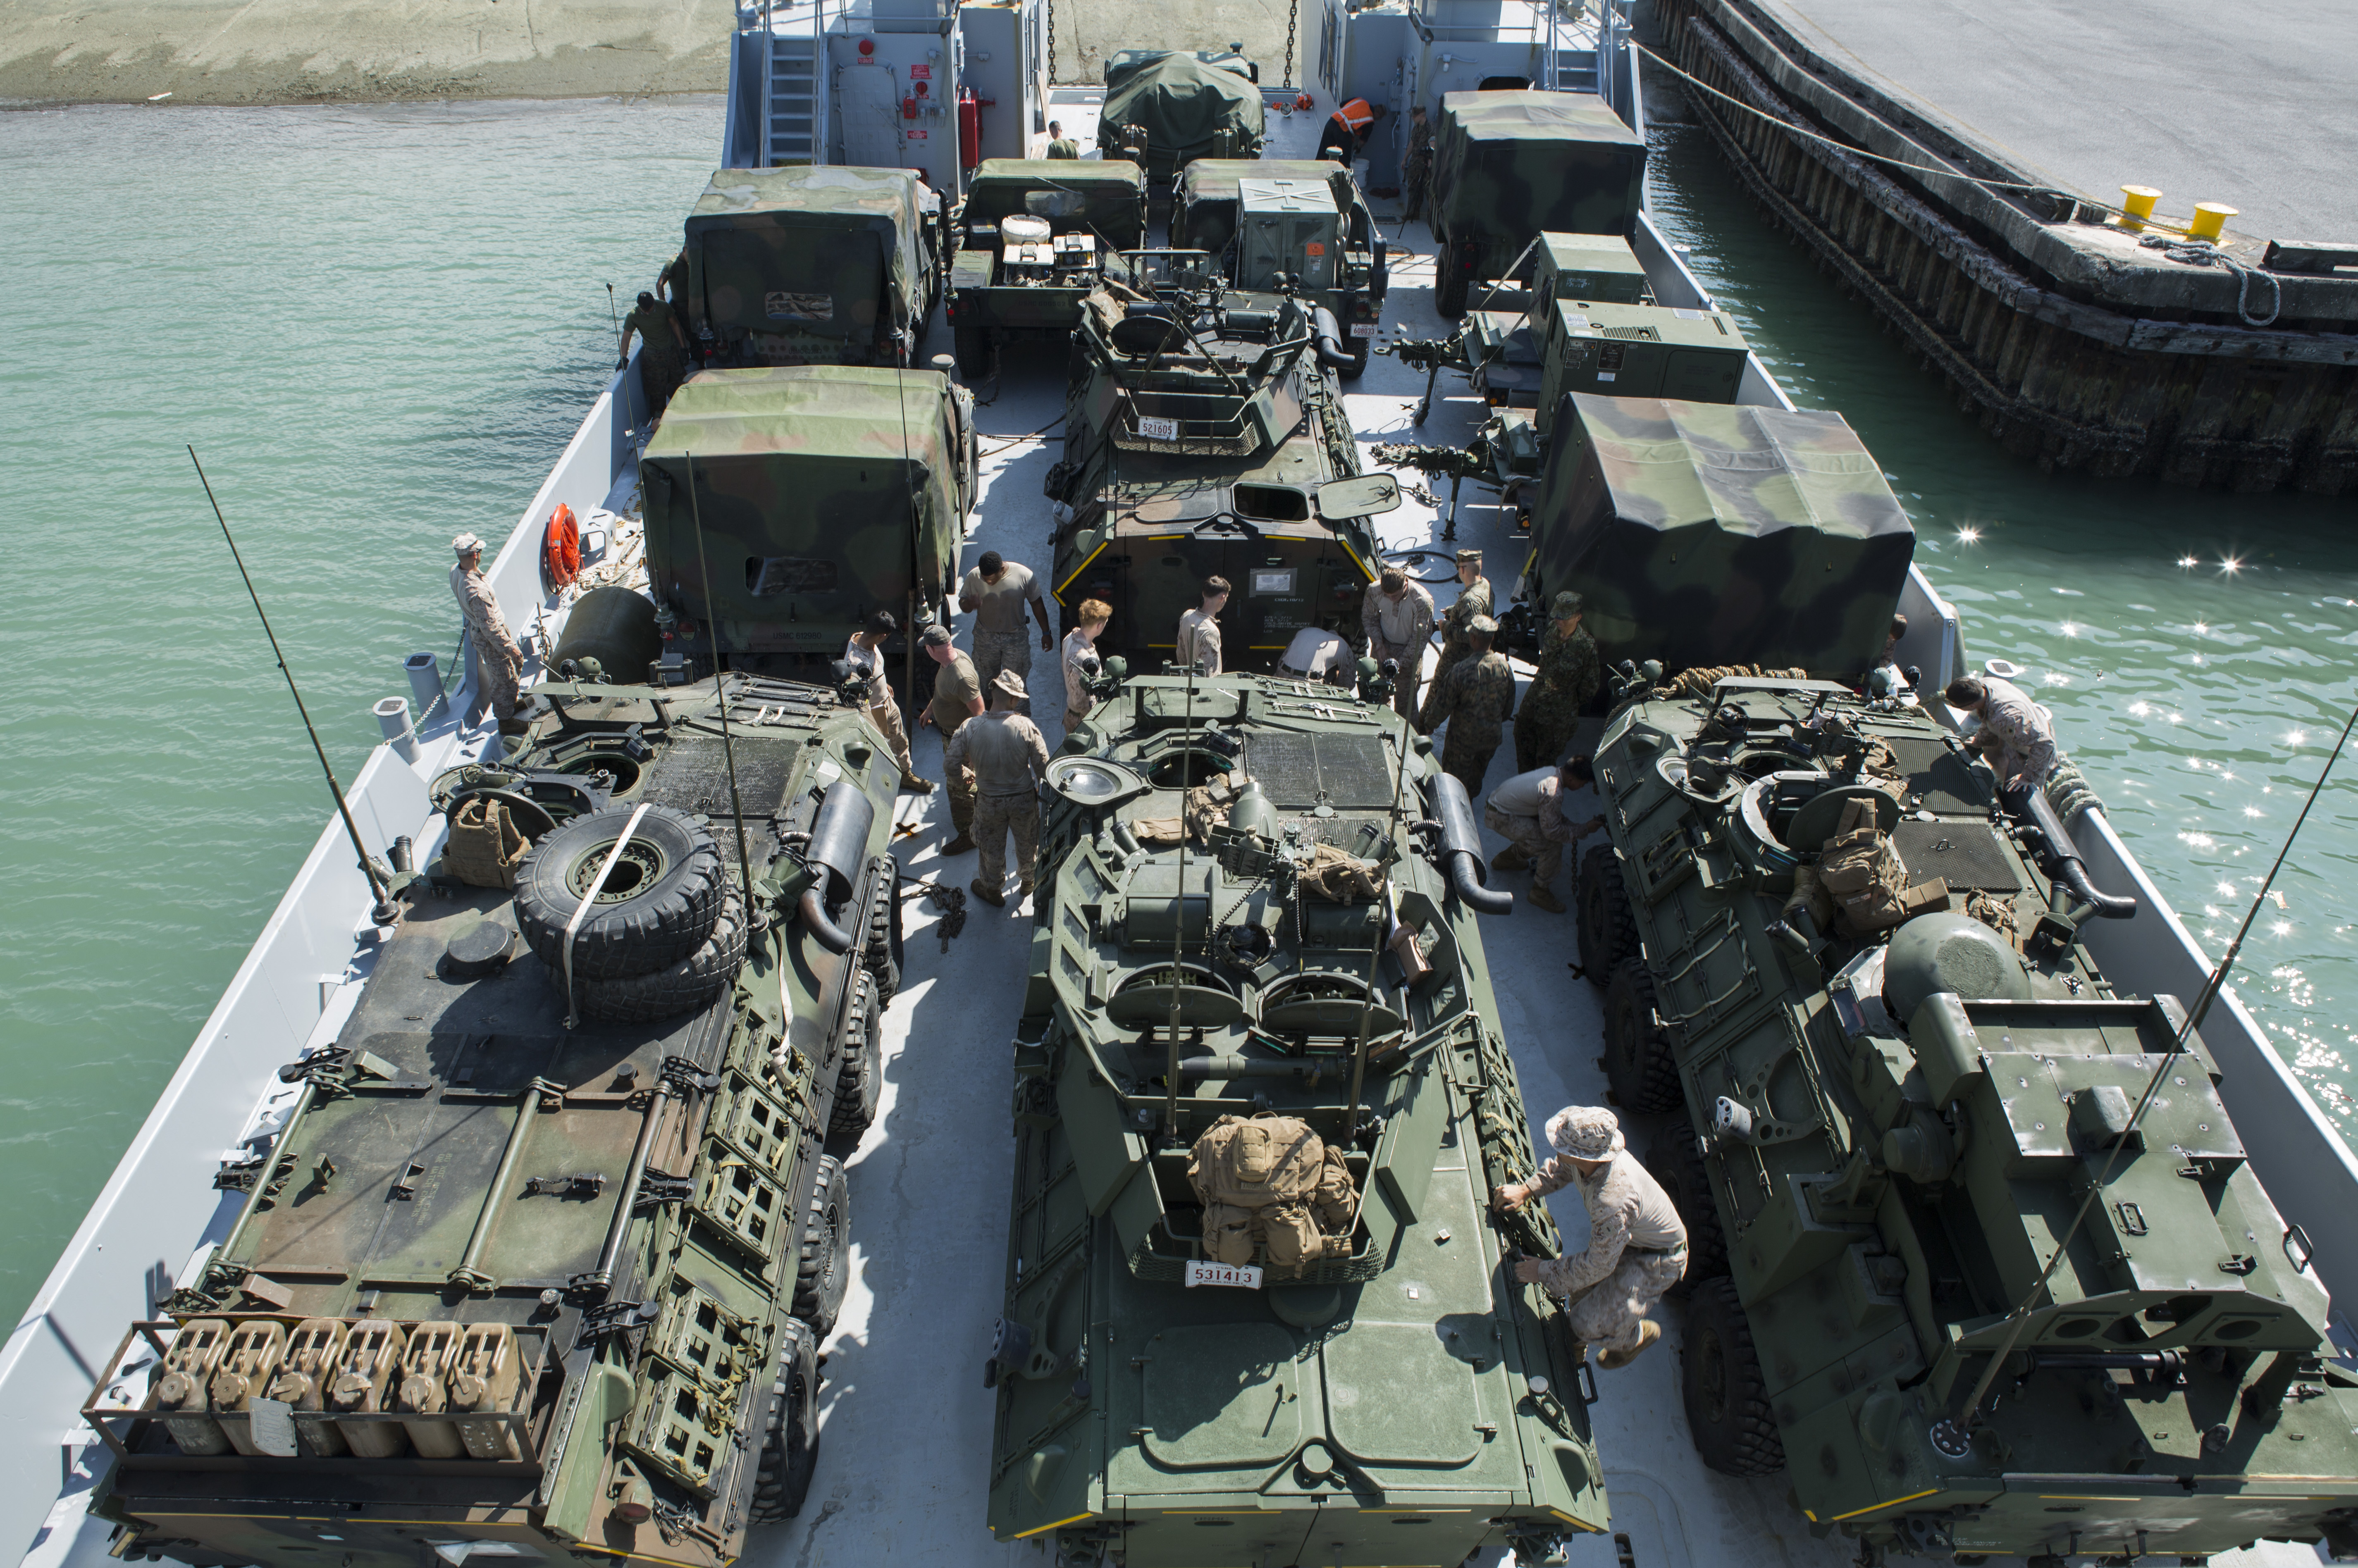 U.S. service members load Humvees onto the USAV Harpers Ferry, Runnymede-class large landing craft, at Naha Port, Okinawa, Japan during Blue Chromite 2017, October 31, 2016. Blue Chromite is a U.S. – only exercise which strengthens the Navy-Marine Corps expeditionary, amphibious rapid-response capabilities based in Okinawa and the greater Indo-Asia-Pacific region. (U.S. Marine Corps photo by MCIPAC Combat Camera Lance Cpl. Tiana Boyd)